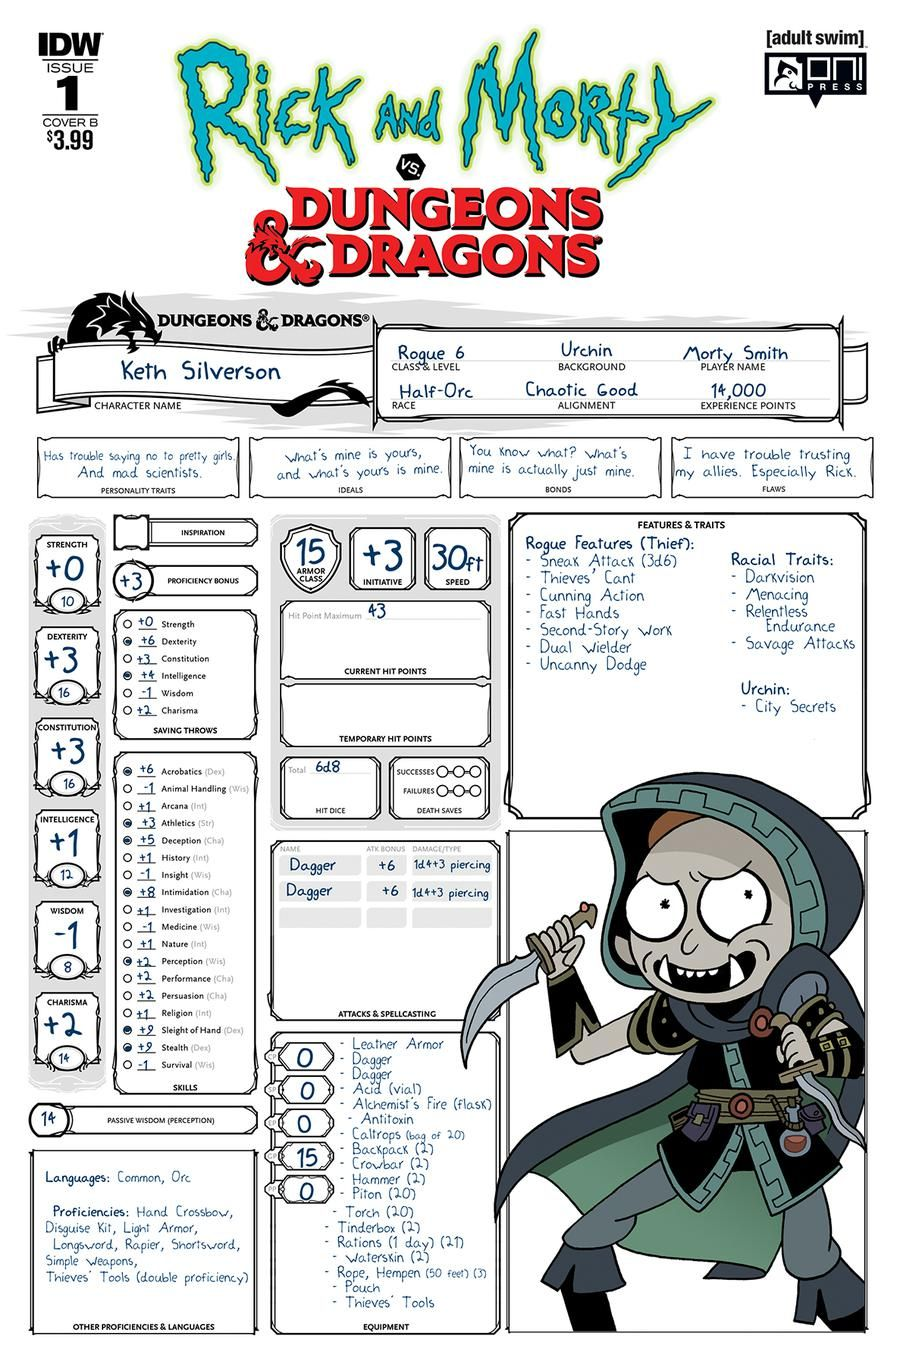 photograph relating to Printable Dungeons and Dragons Character Sheet named Morty of Rick and Morty Includes a Dungeons and Dragons